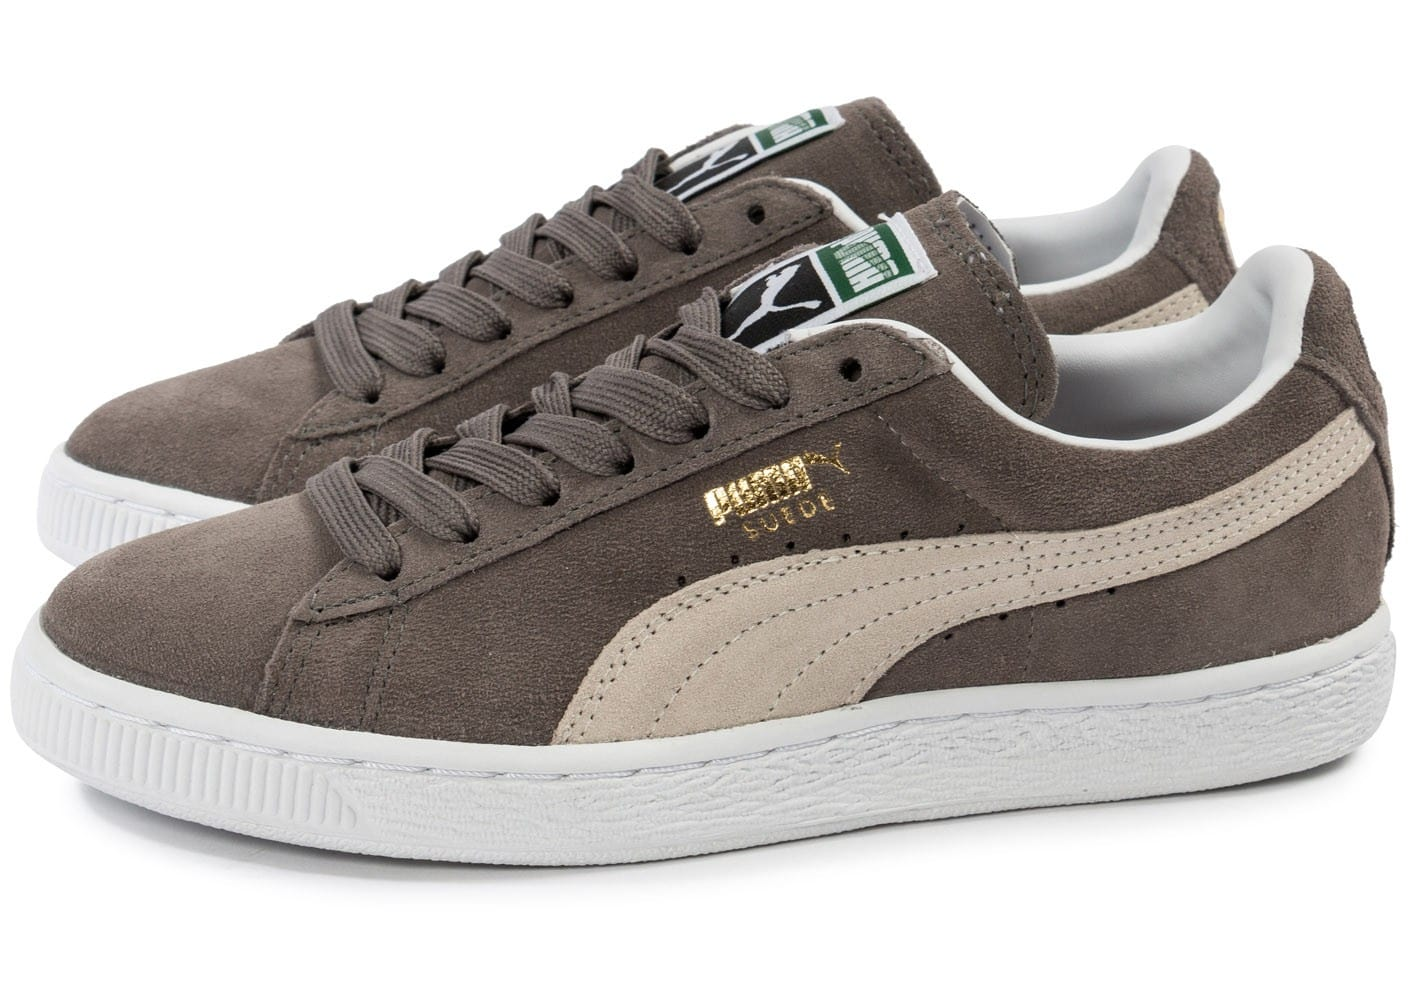 Puma Suede Classic chaussures gris